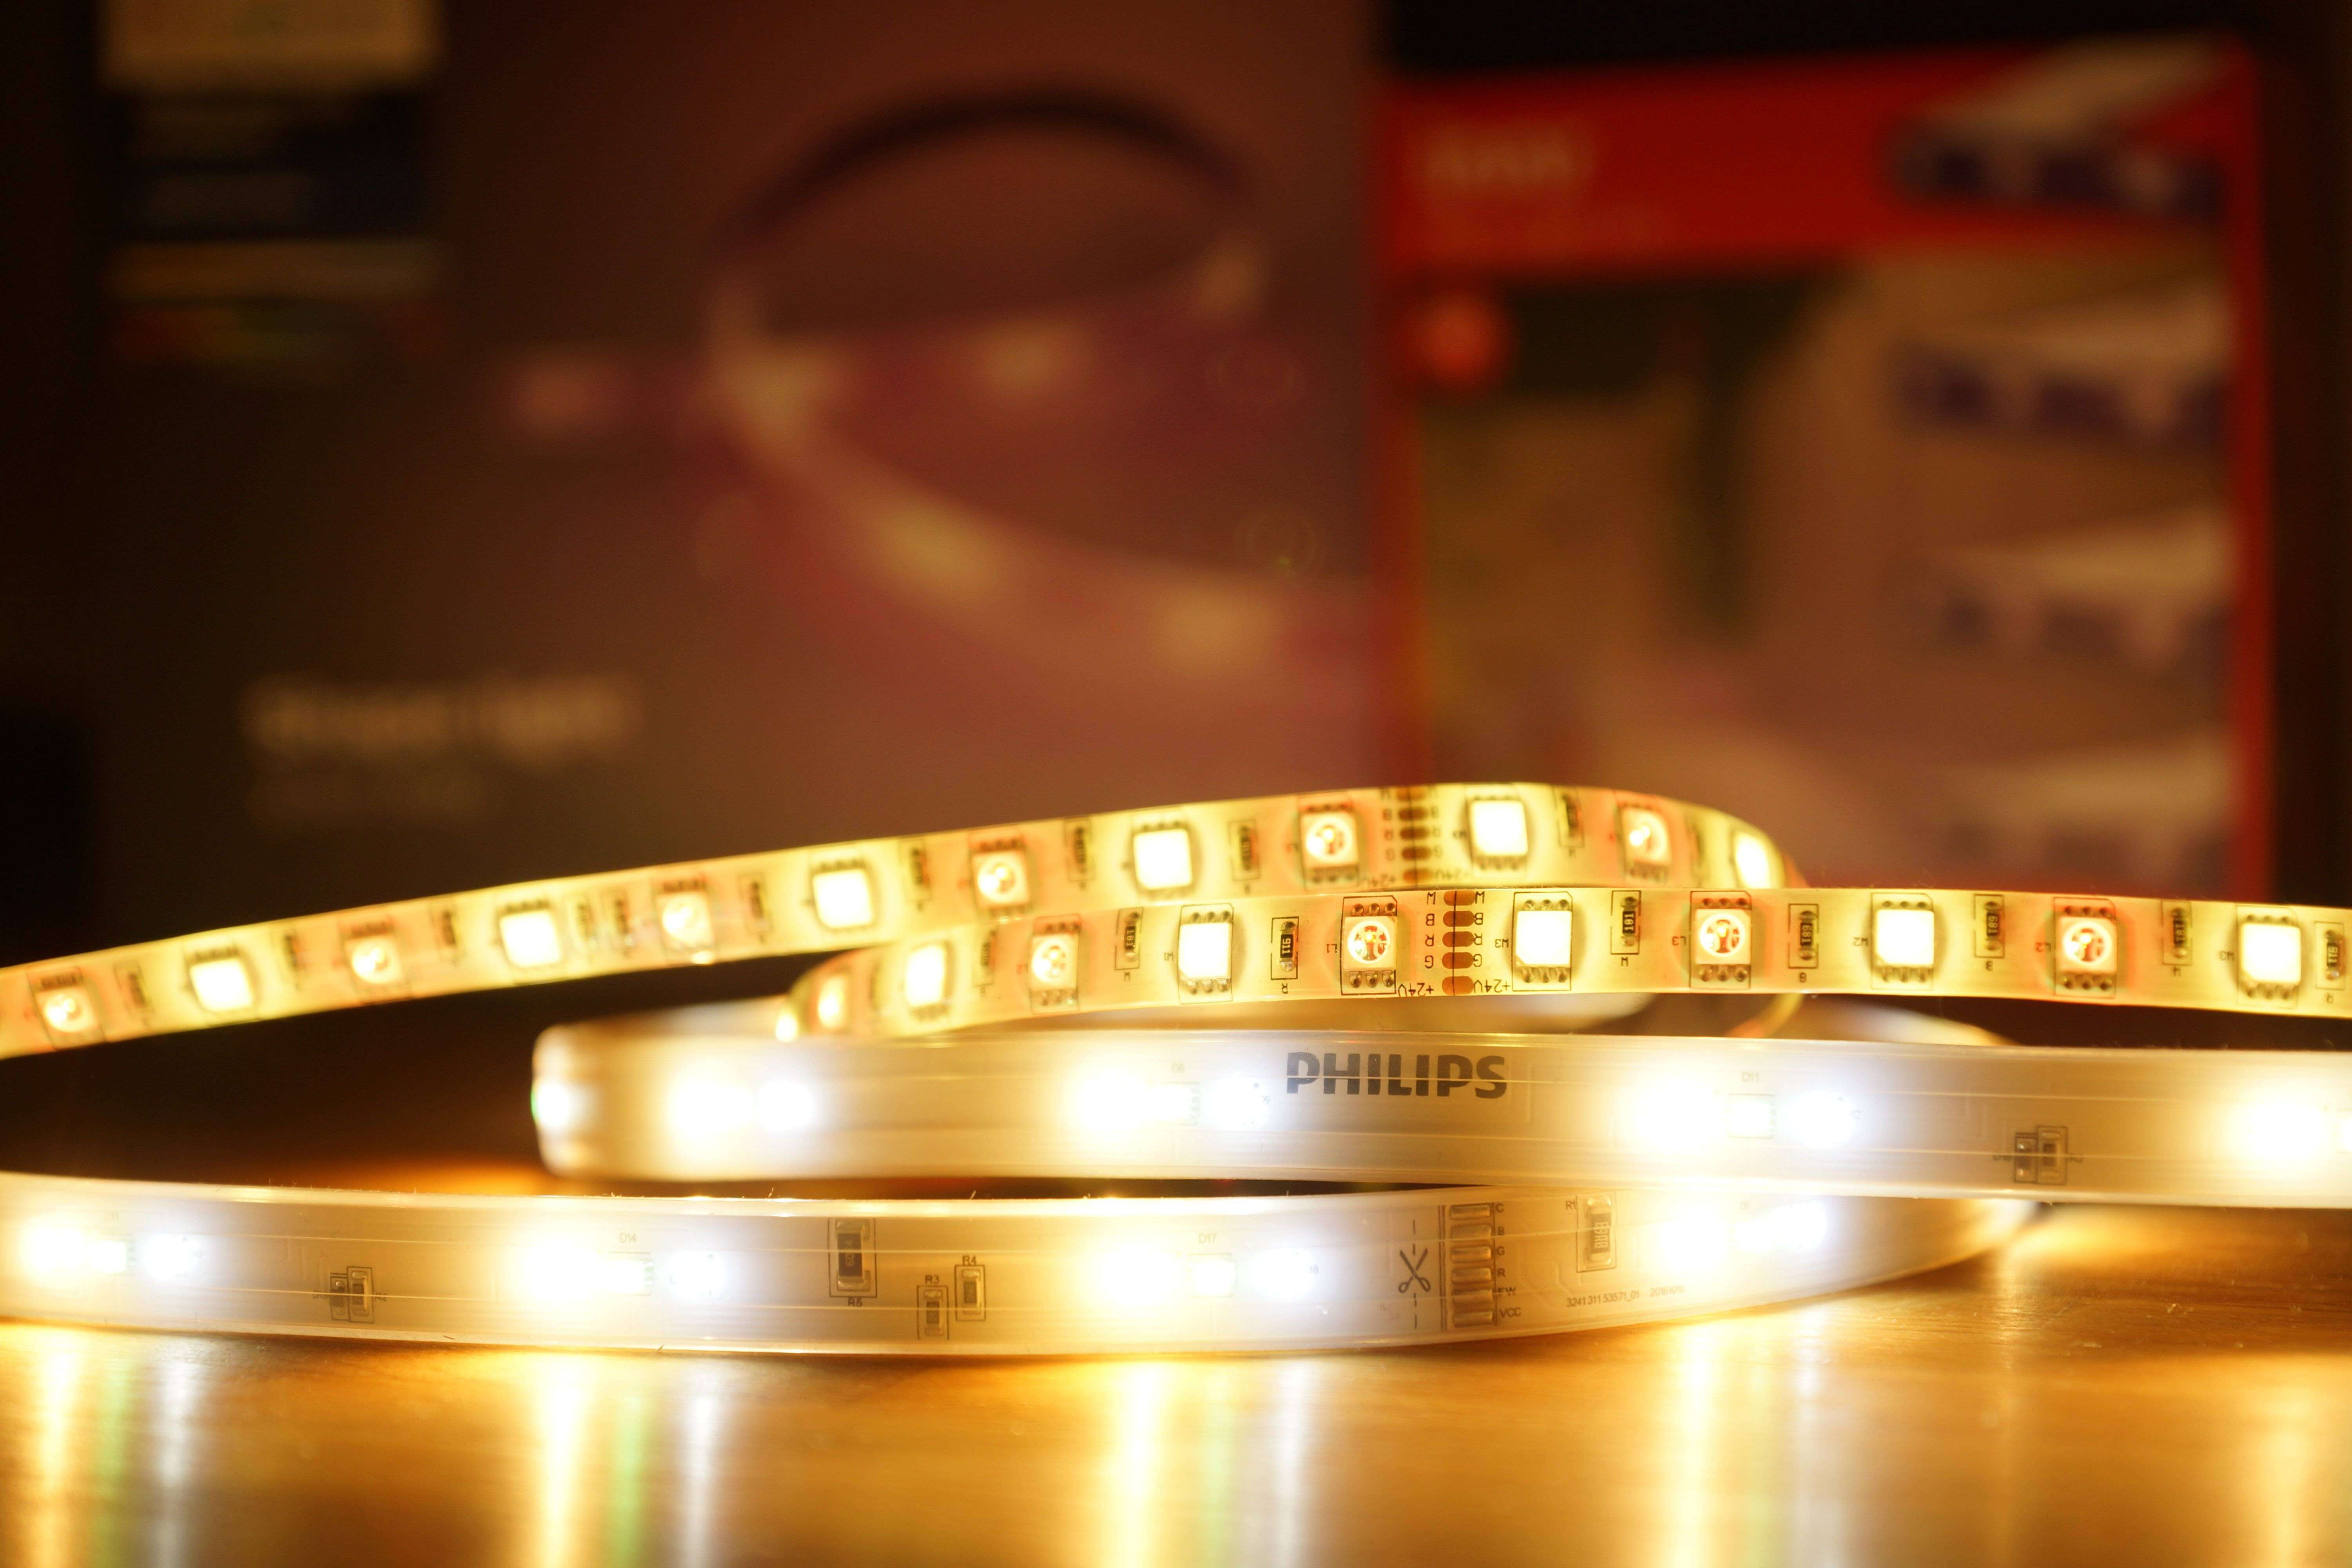 Günstige Alternative: Innr Flex Light FL 130C im Test - Vergleich mit Philips Hue Lightstrip+